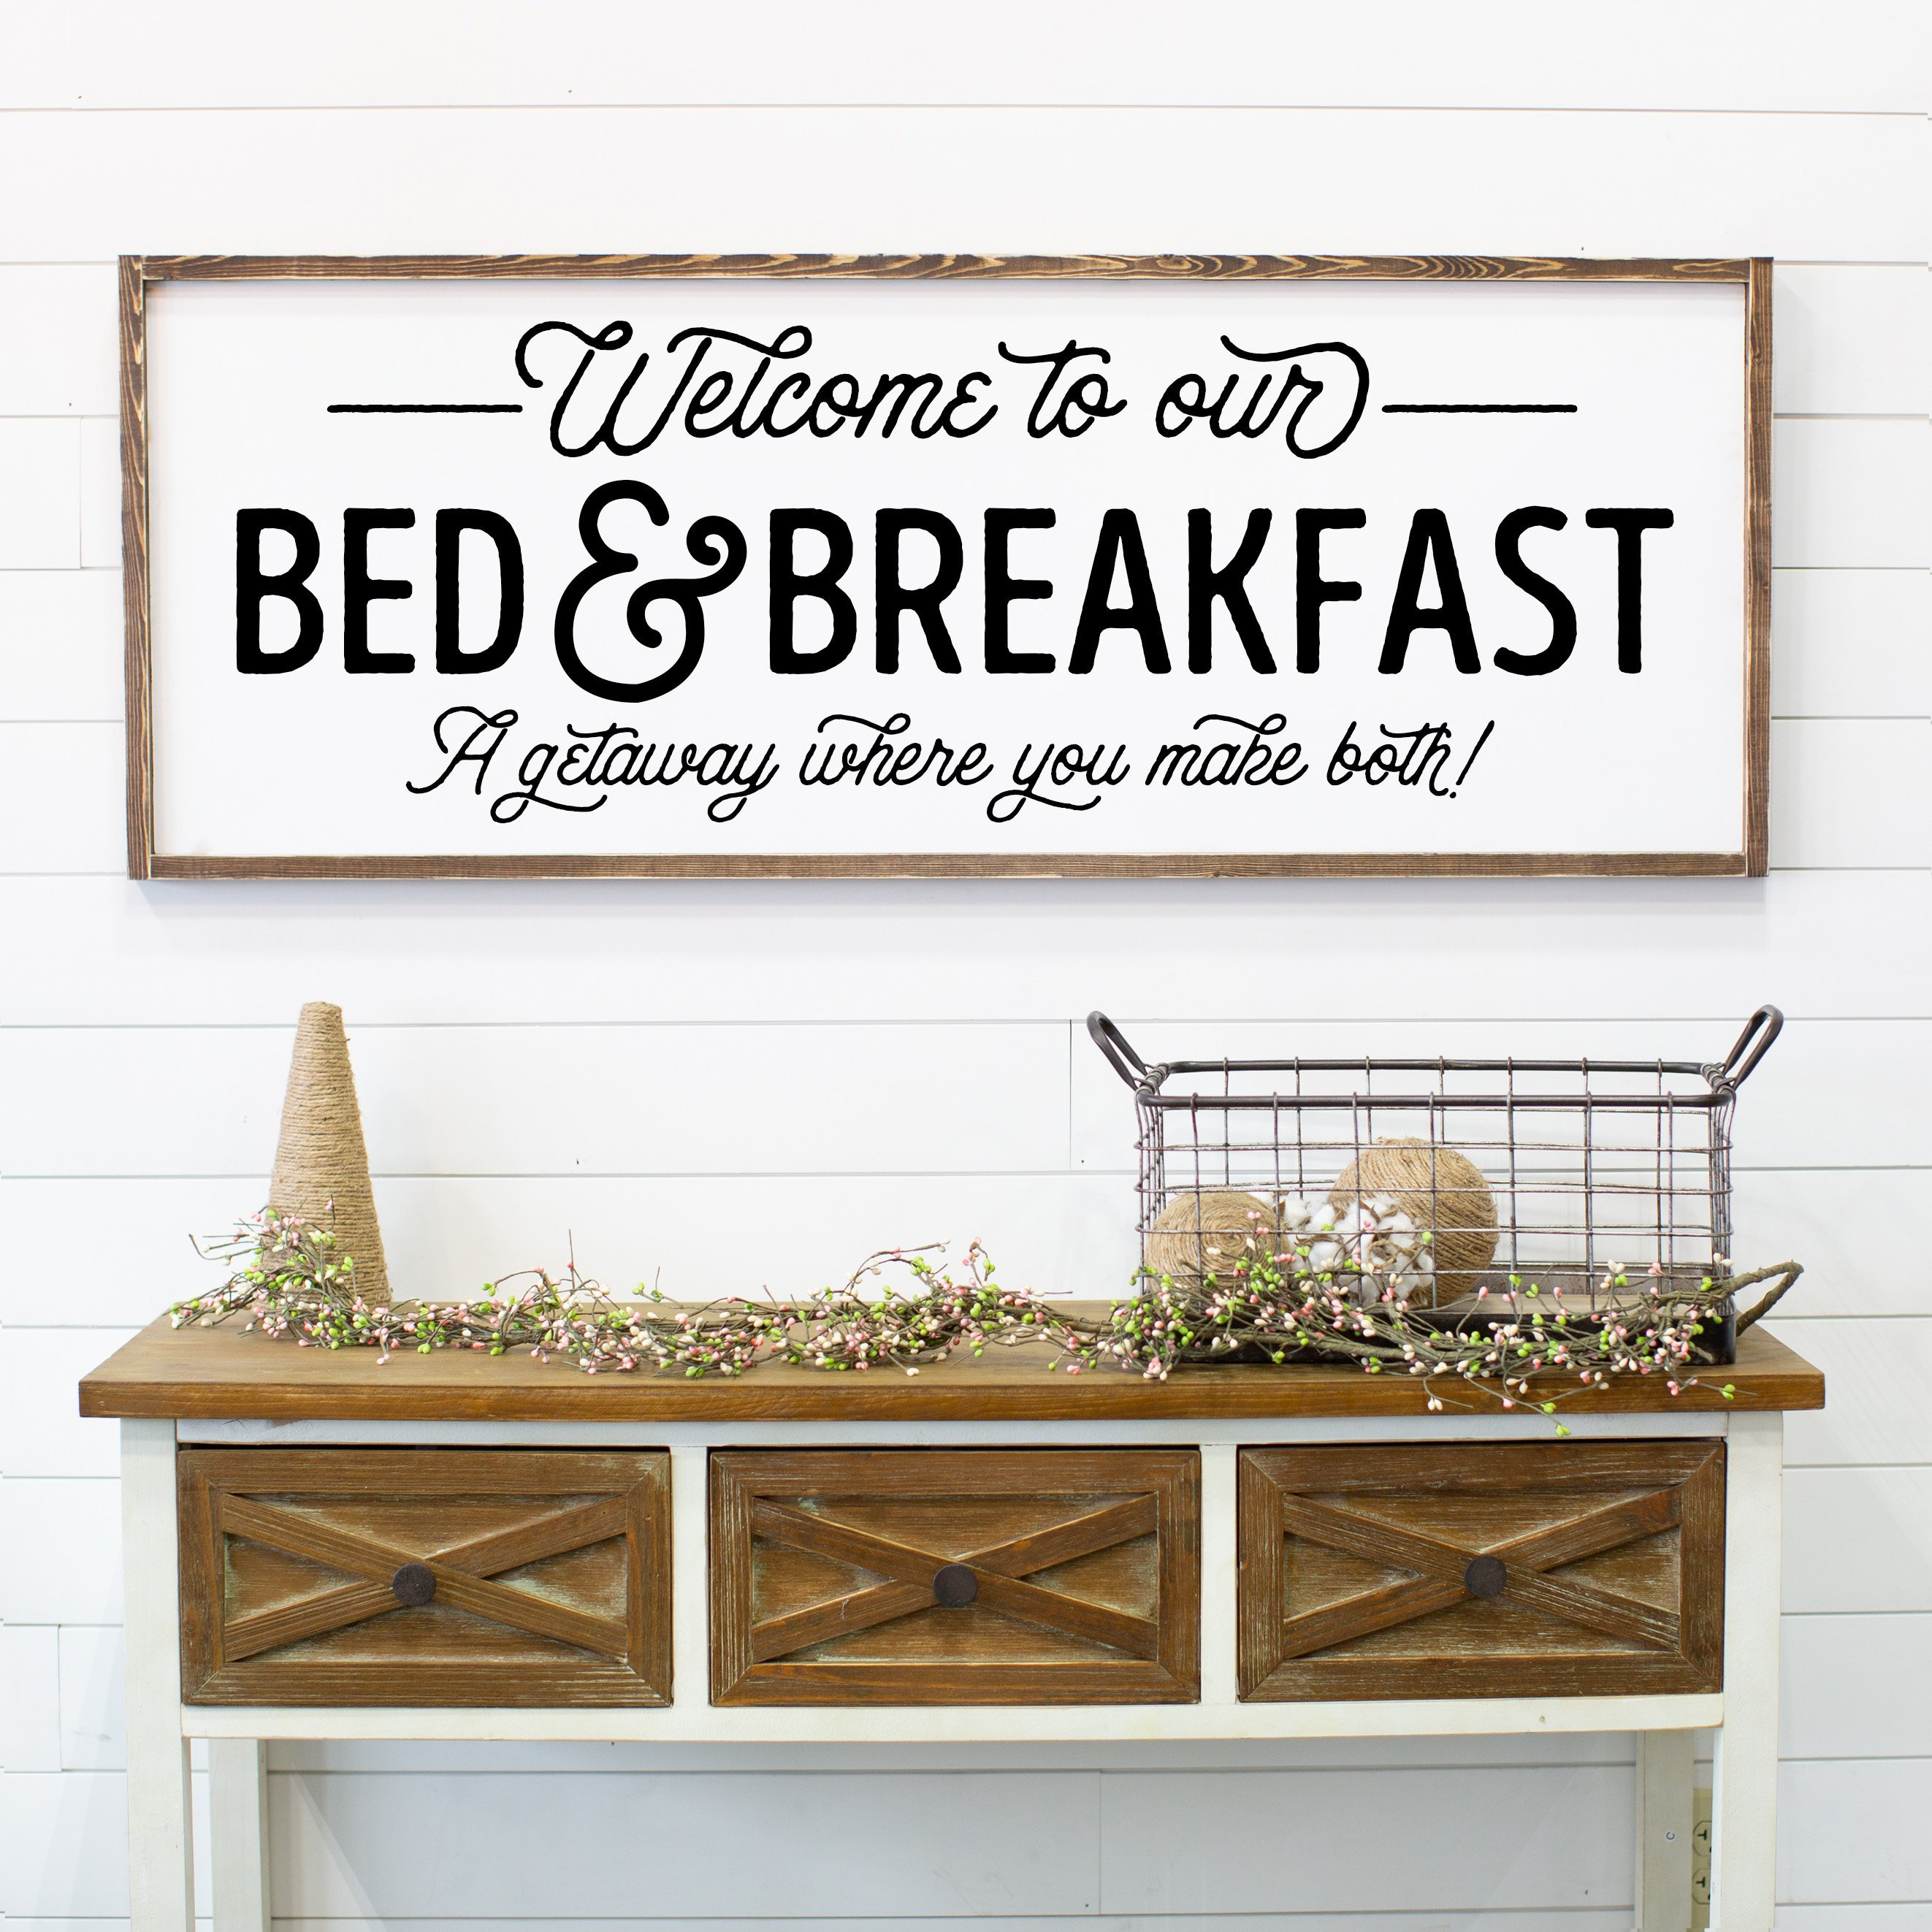 Welcome To Our Bed & Breakfast | The Love Built Shop